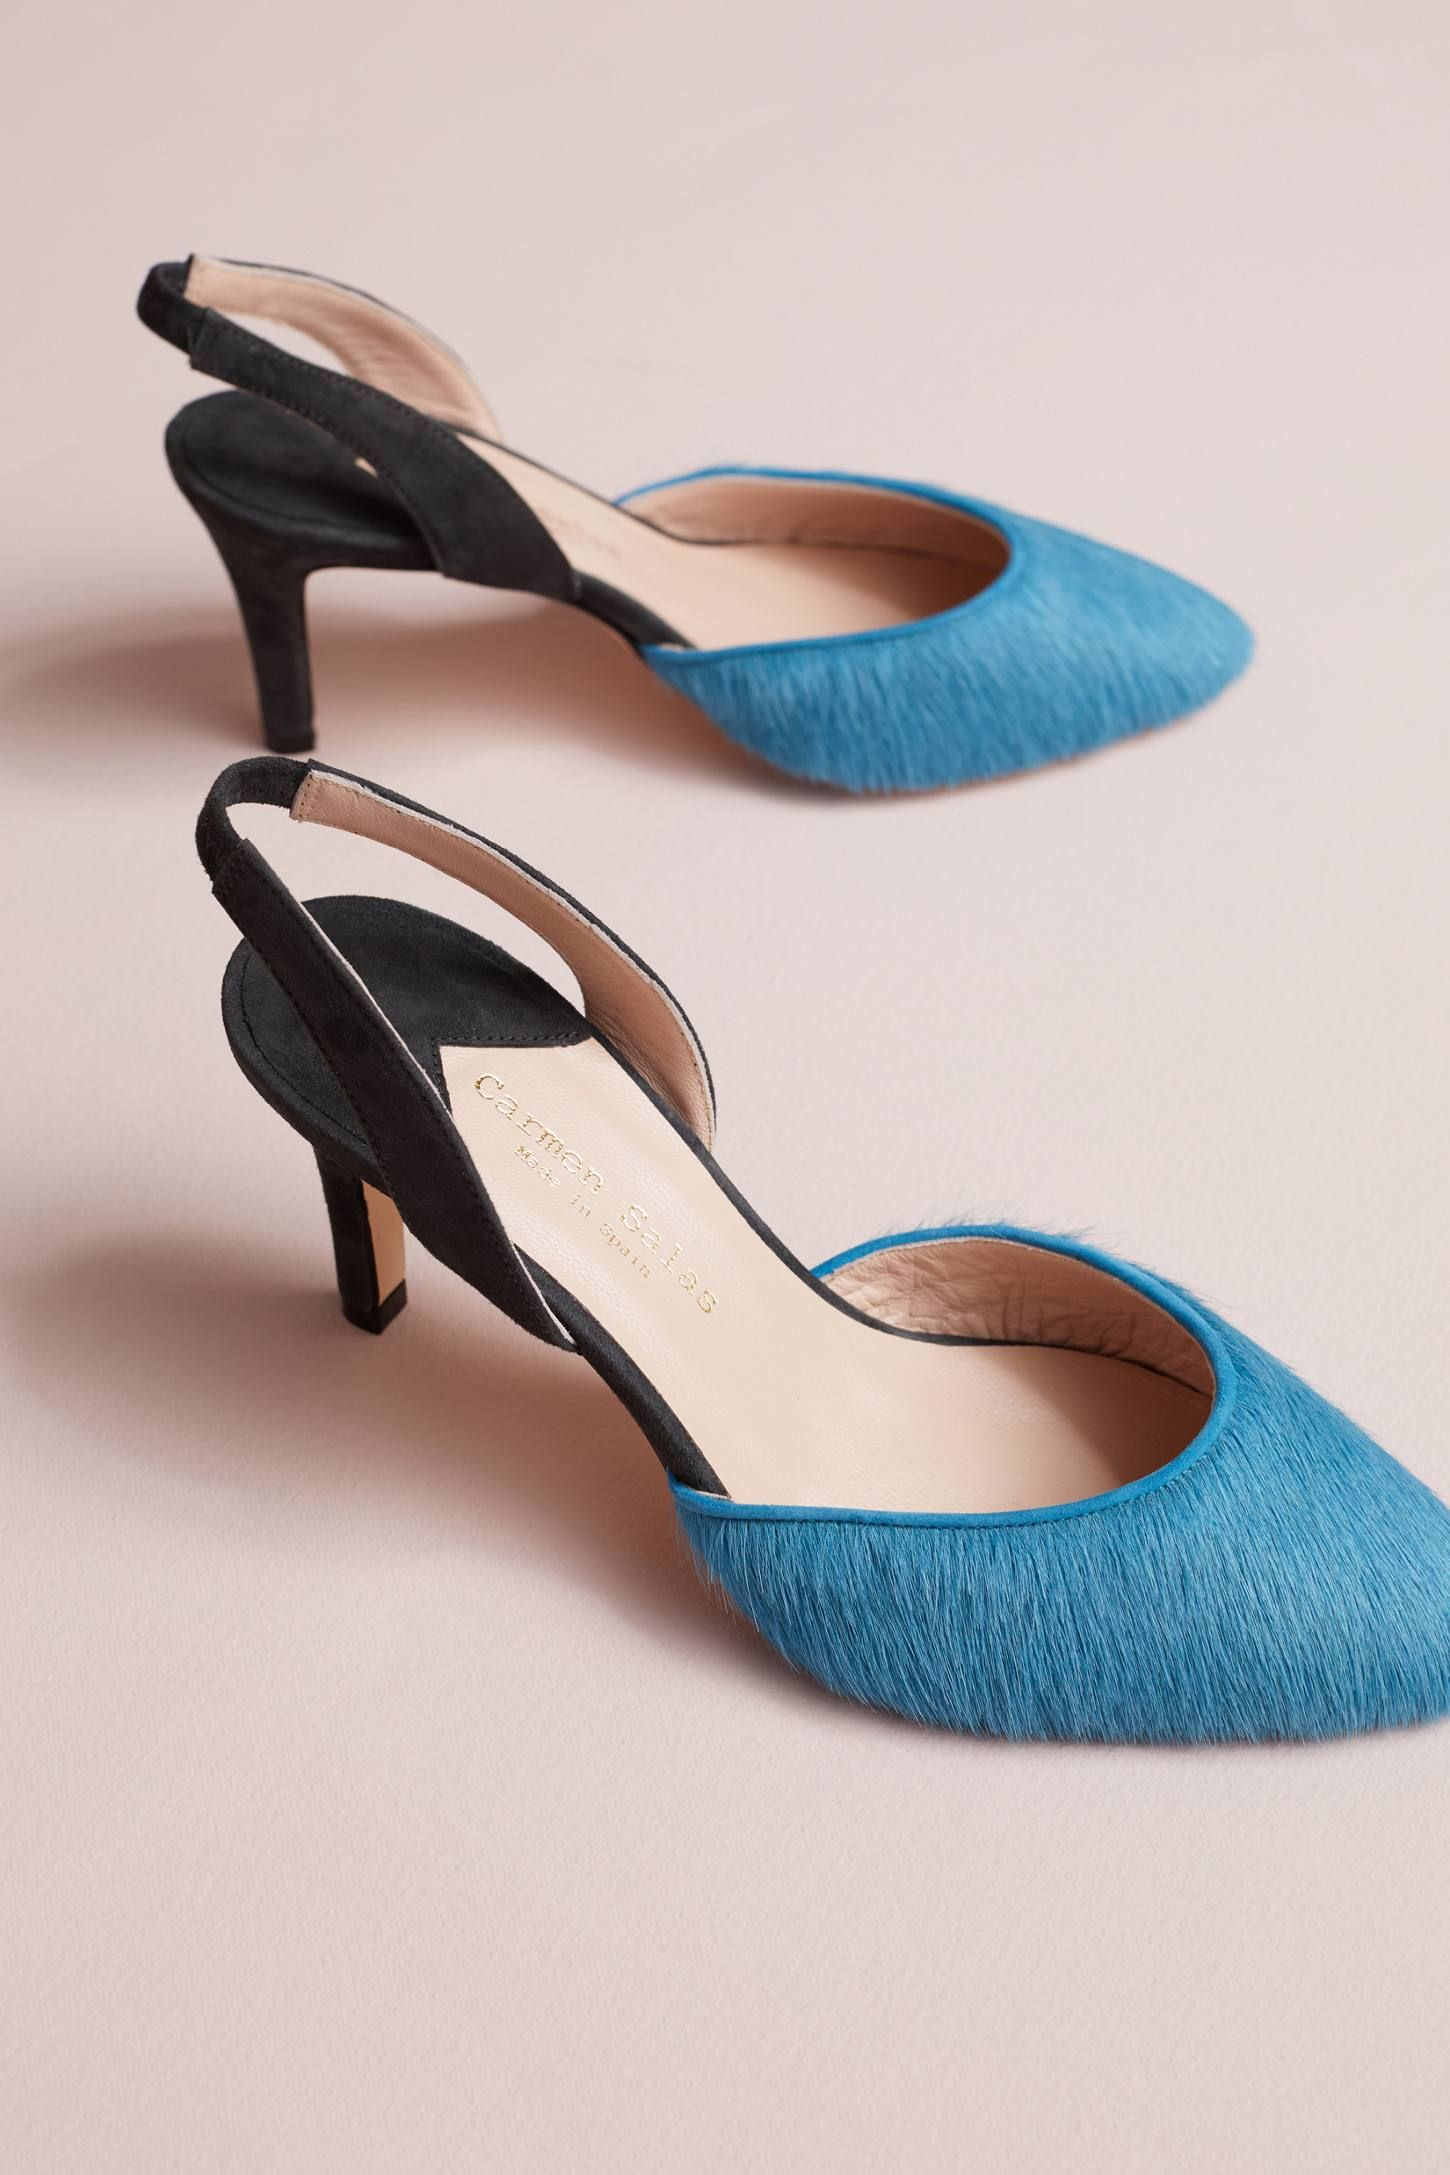 eb0ac3d25a7 Shop the Carmen Salas Victoria Slingback Pumps and more Anthropologie at  Anthropologie today. Read customer reviews